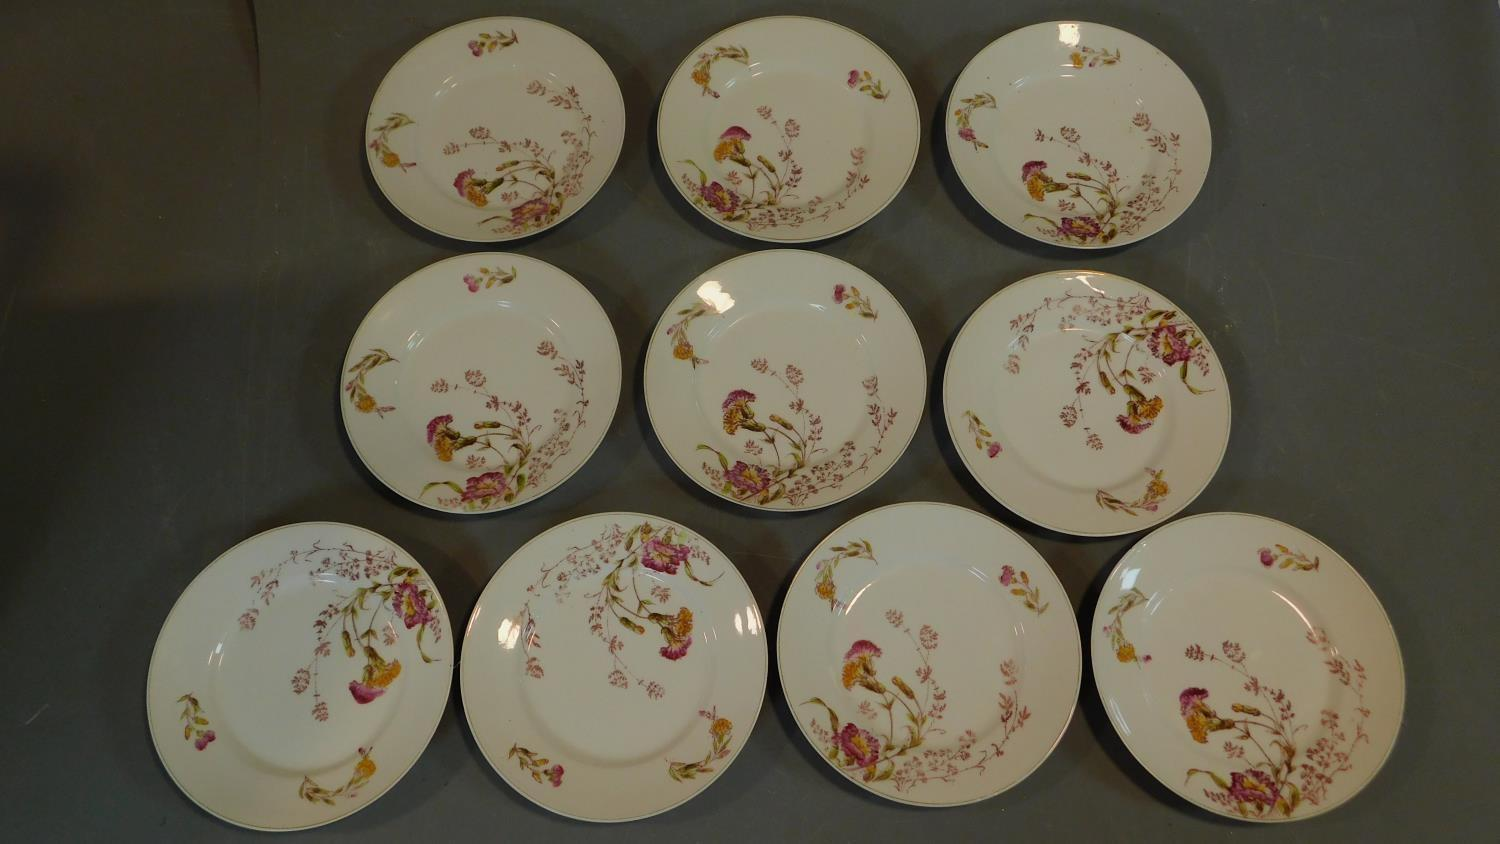 A set of 19th century floral decorated plates. 23x23cm